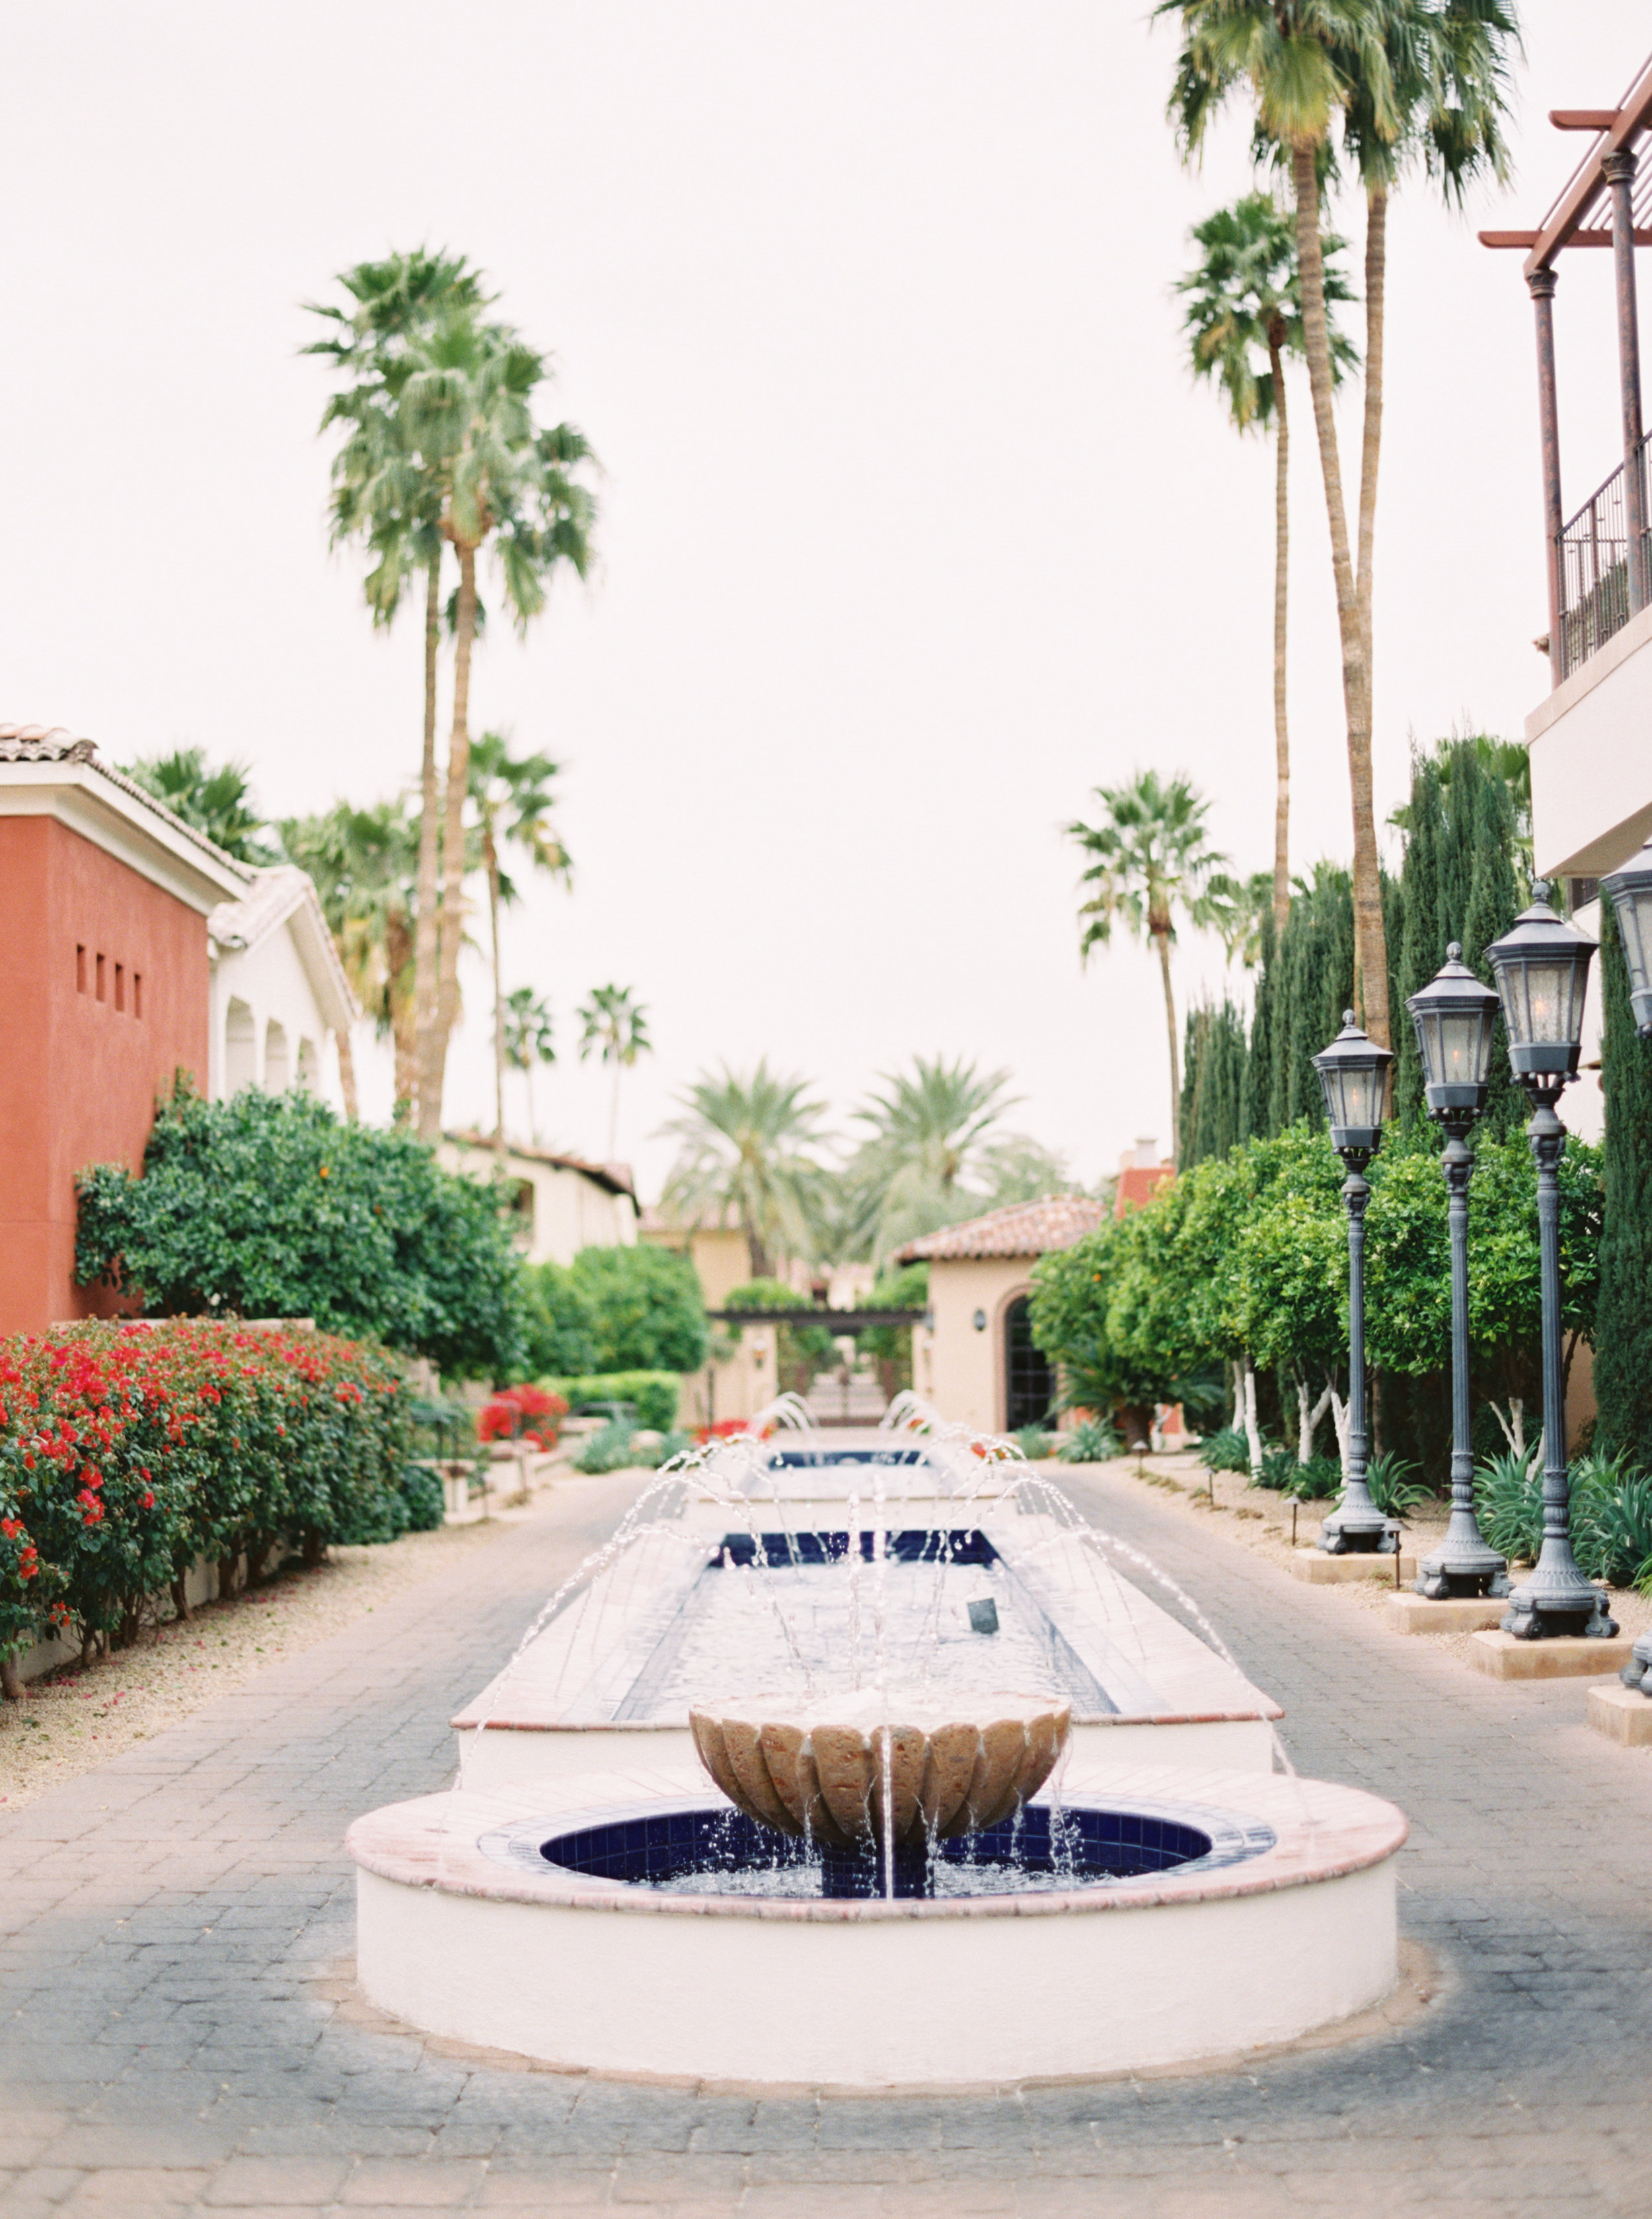 1 omni scottsdale montelucia wedding venue spanish style wedding venue Life Design Events photos by Melissa Jill Photography.jpg